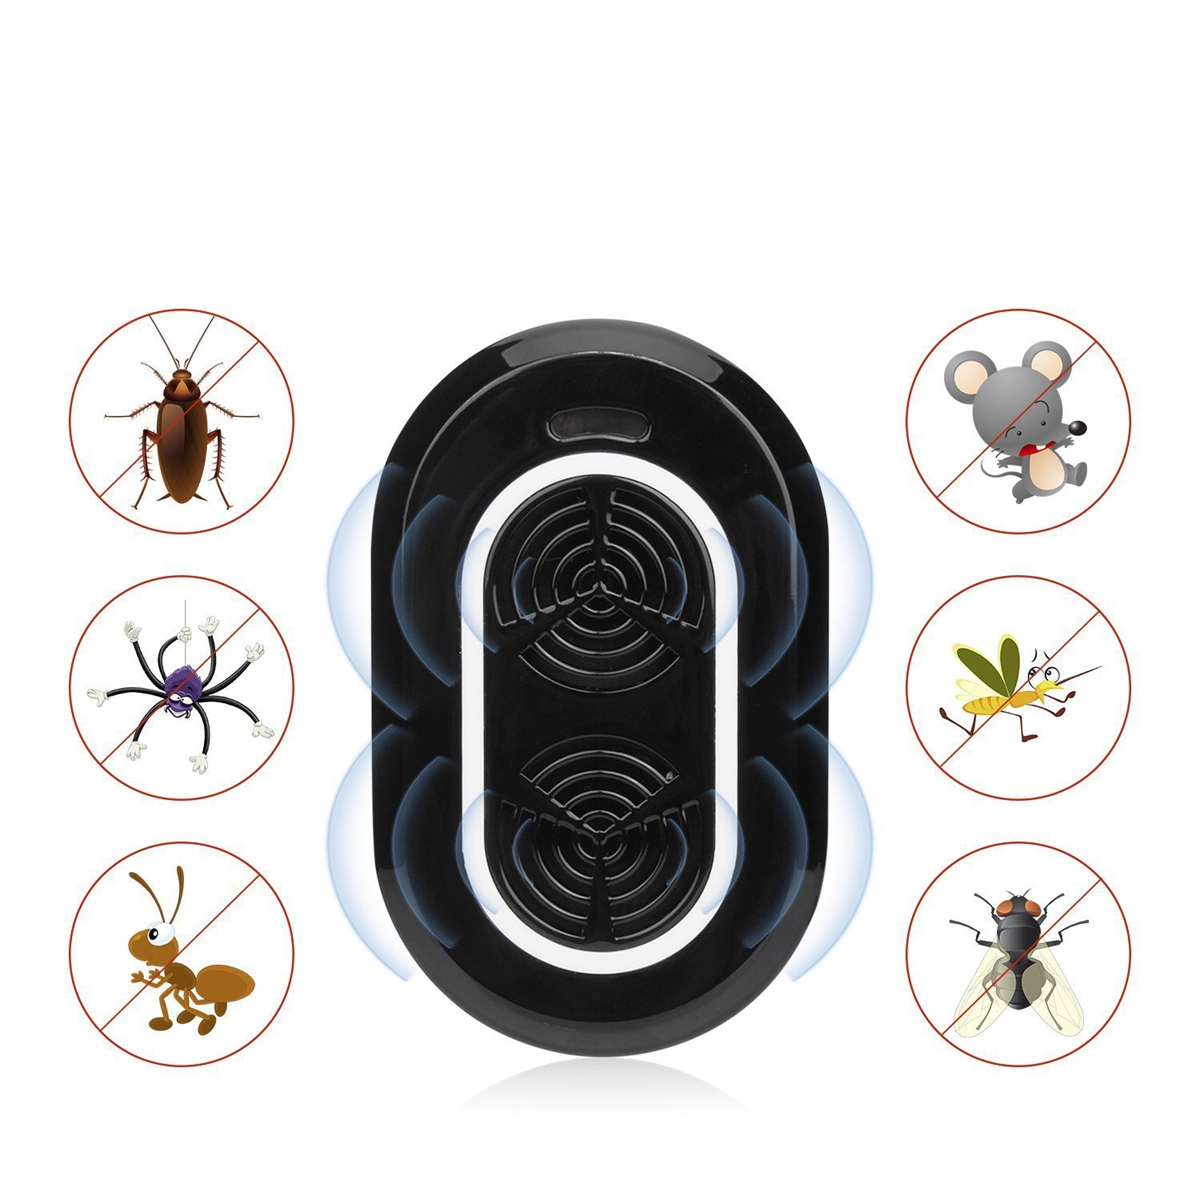 High Quality Ultrasonic Pest Repeller Electronic Pests Control Repel Mouse Bugs Mosquitoes Killer for Kids Baby Care Elder Adult ultrasonic pest repeller electronic mouse control tool